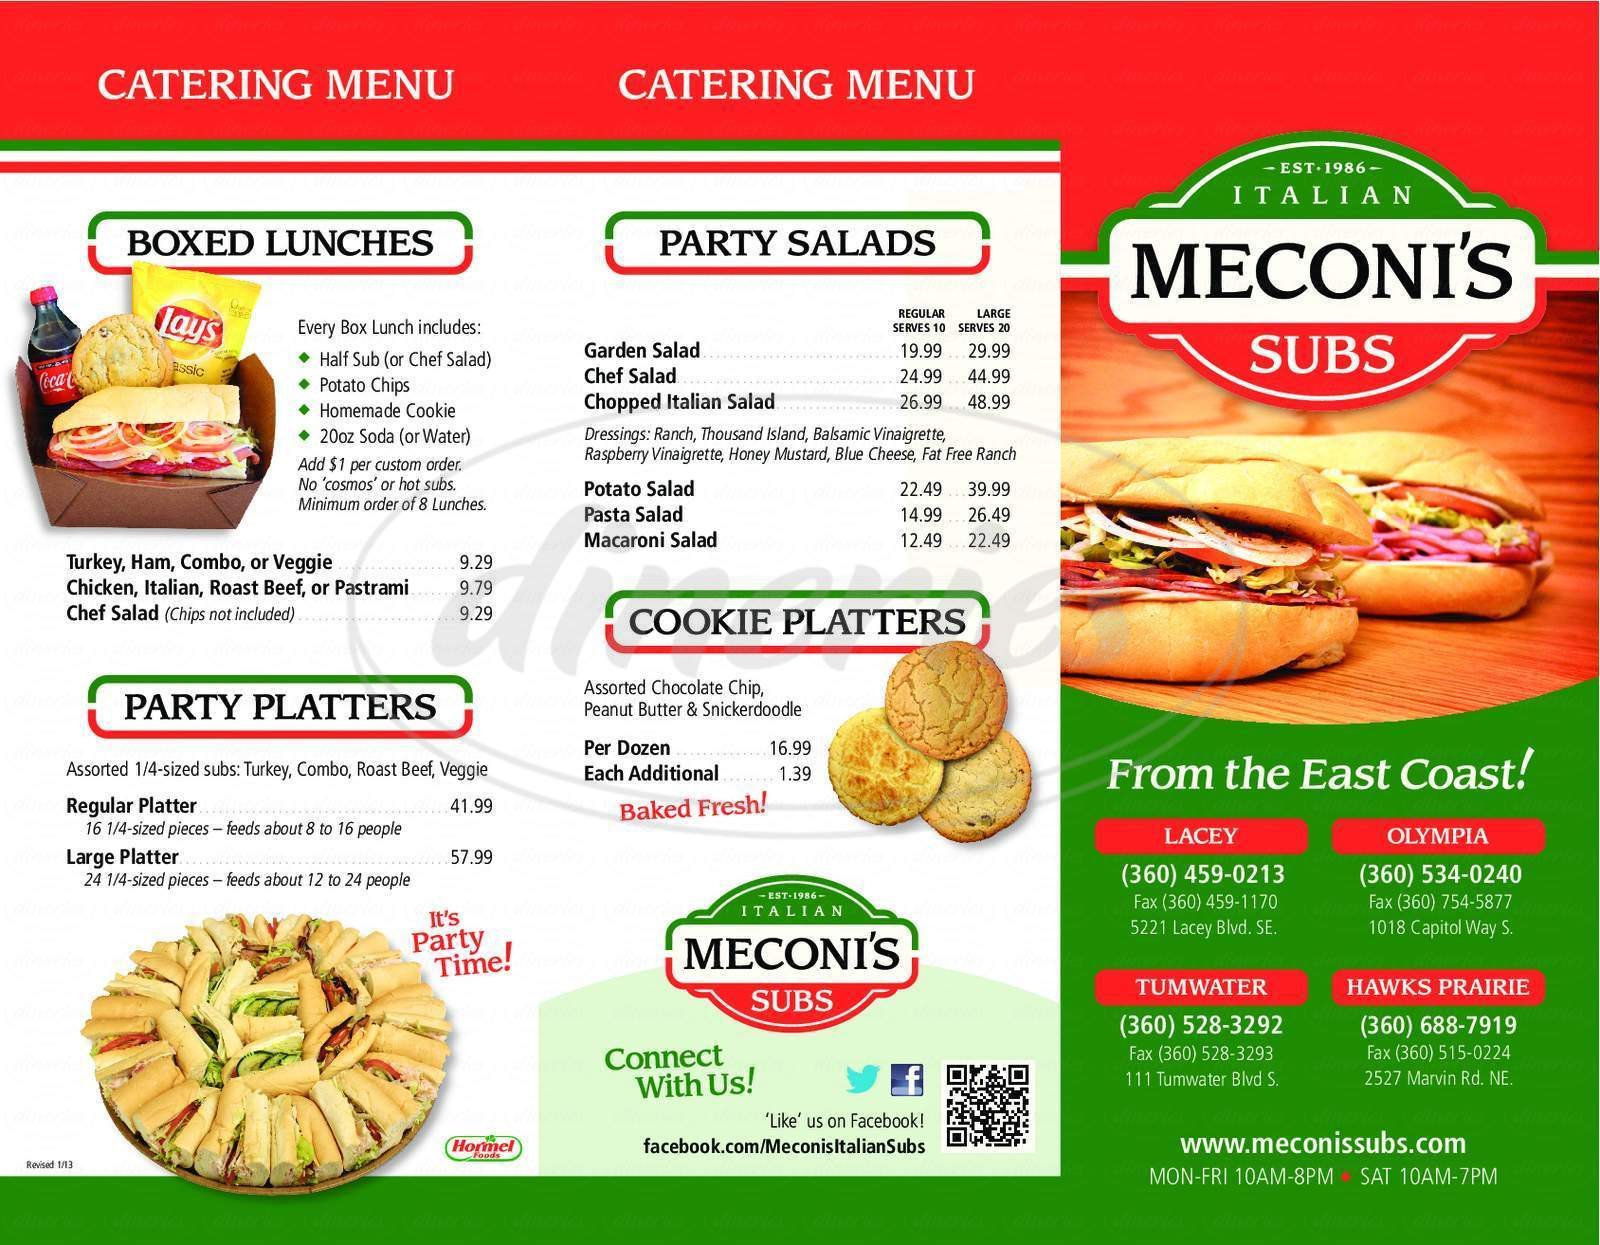 menu for Meconi's Subs